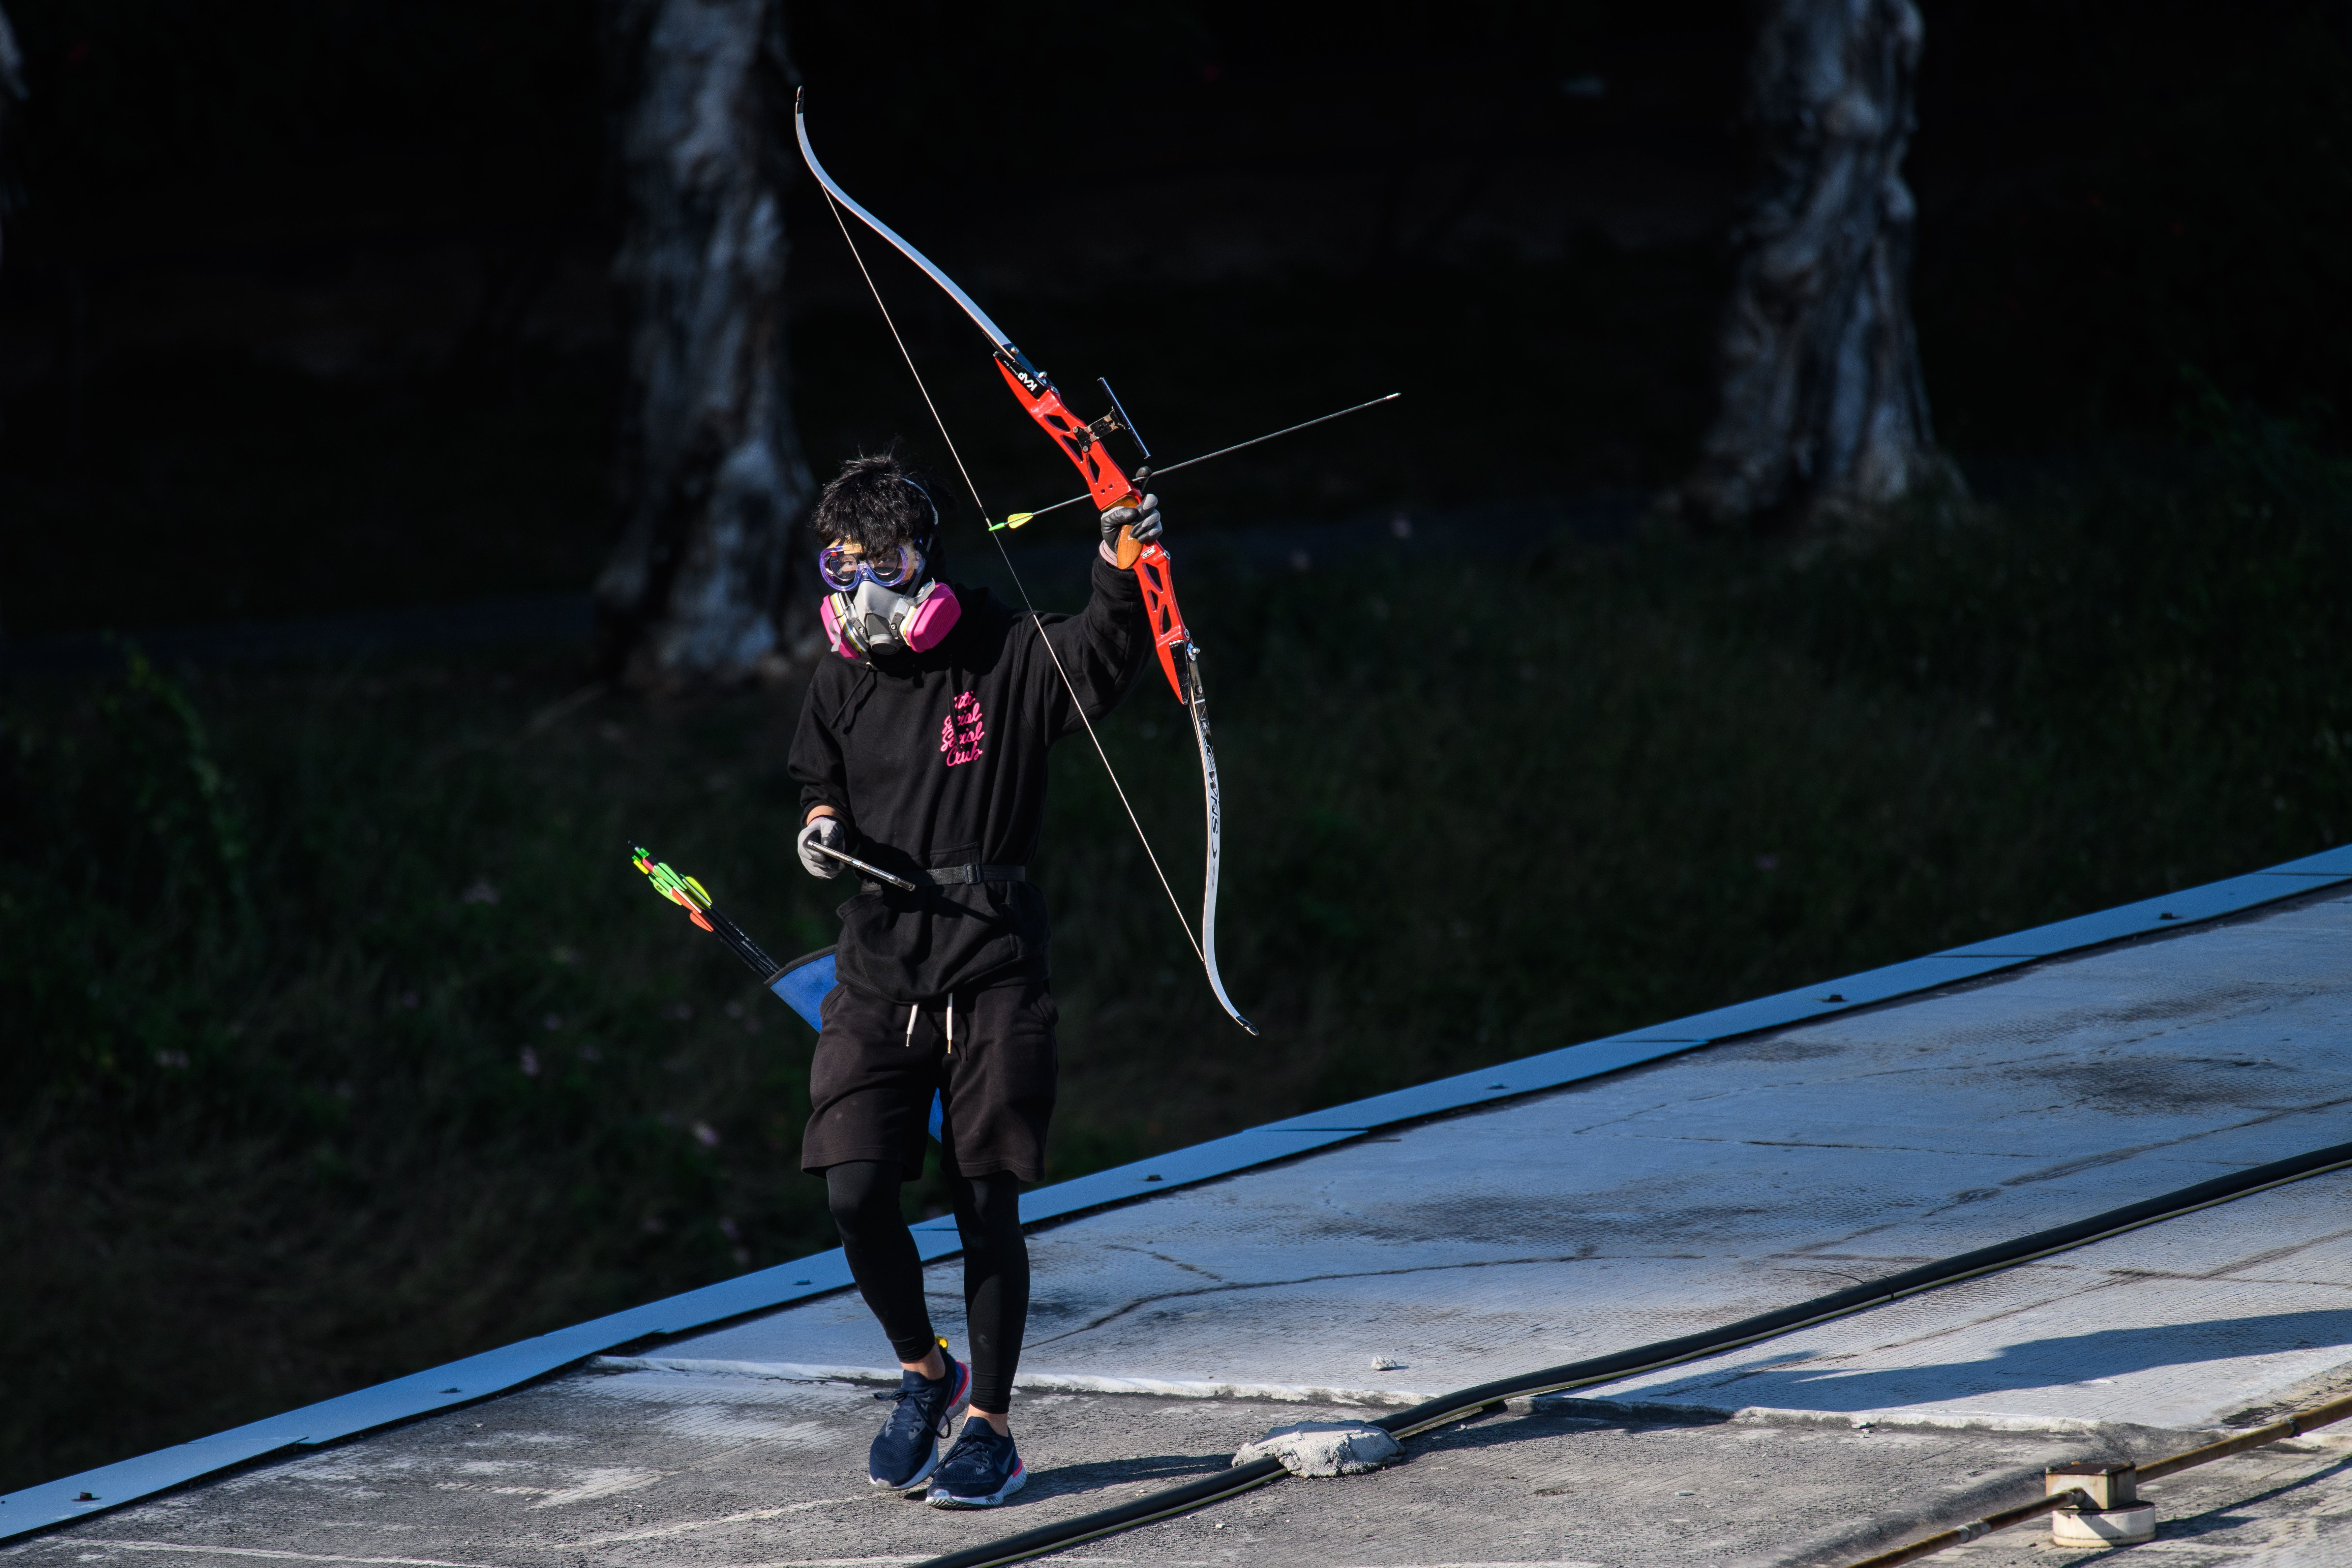 A protester with a bow and arrows near the Hong Kong Polytechnic University on November 16, 2019.